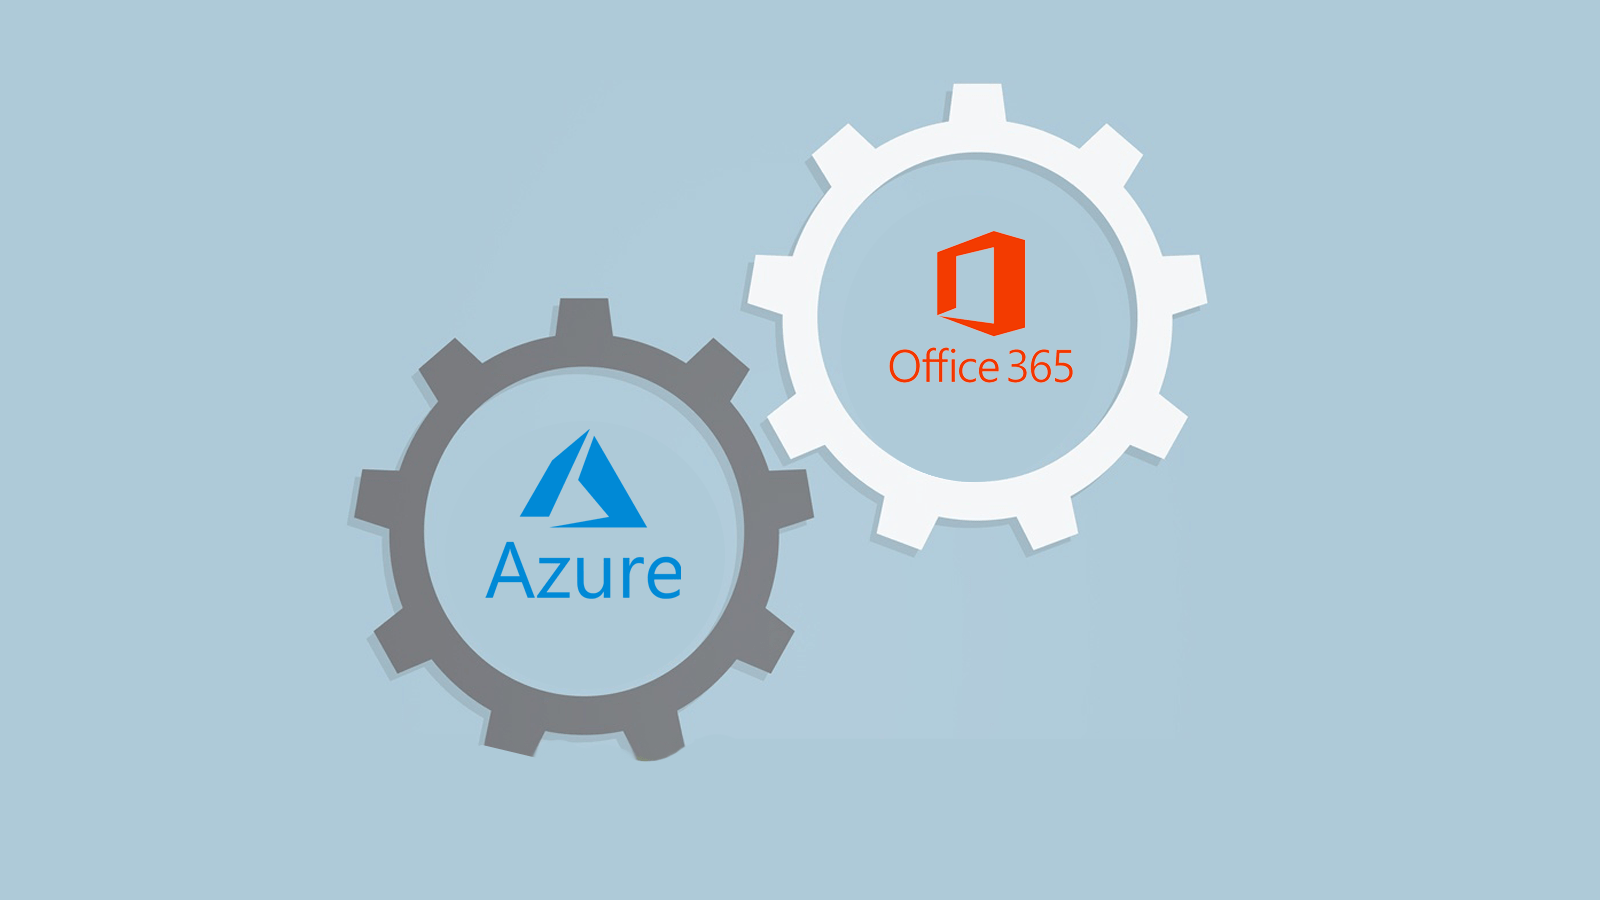 How Does Azure and Office 365 Work Together?